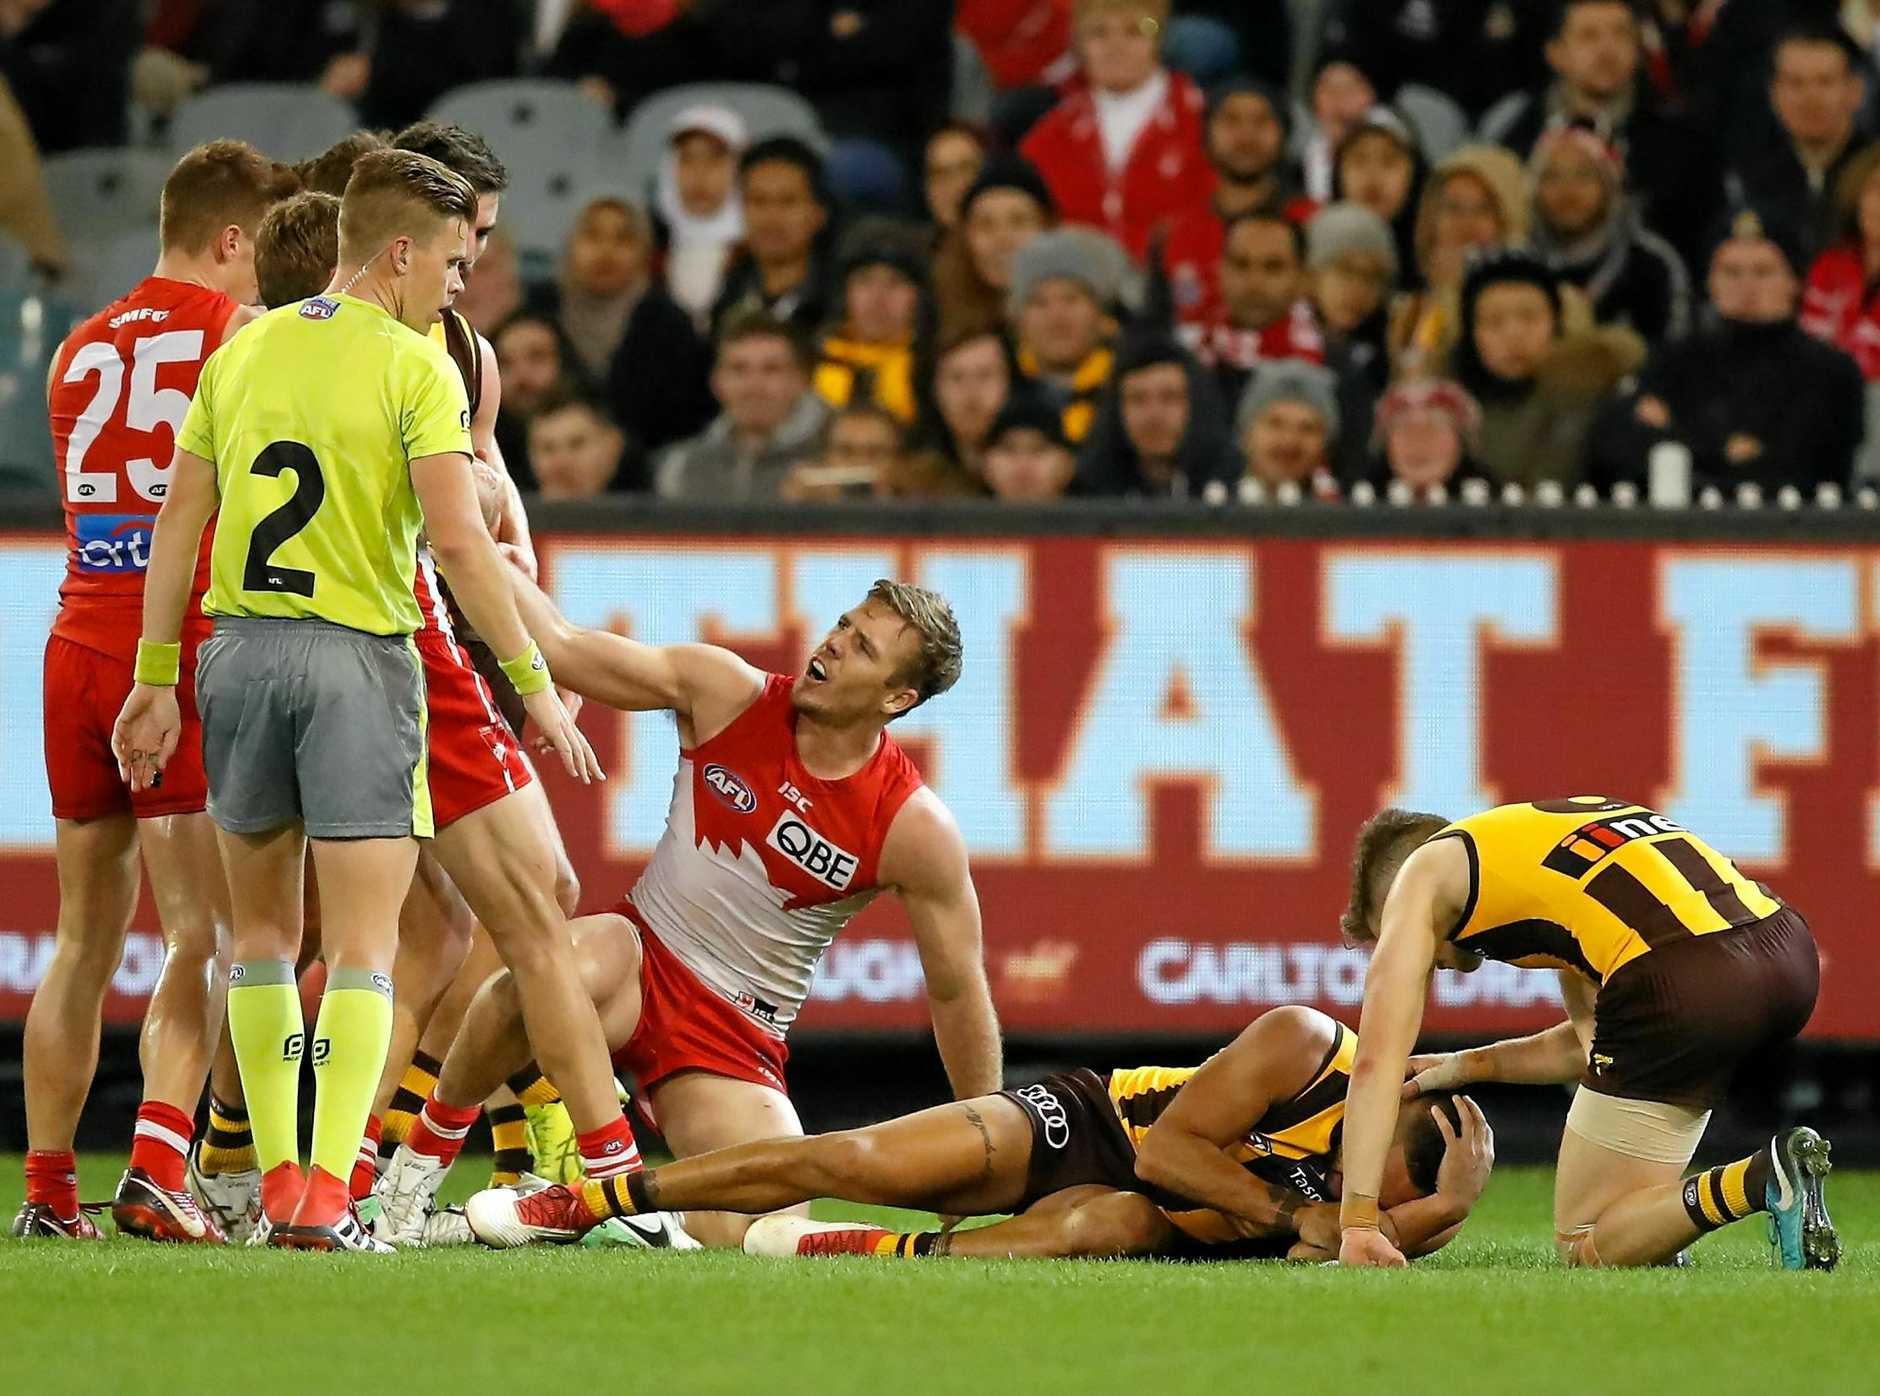 Jarman Impey lies prostrate on the ground as the Swans' Luke Parker denies any intent.